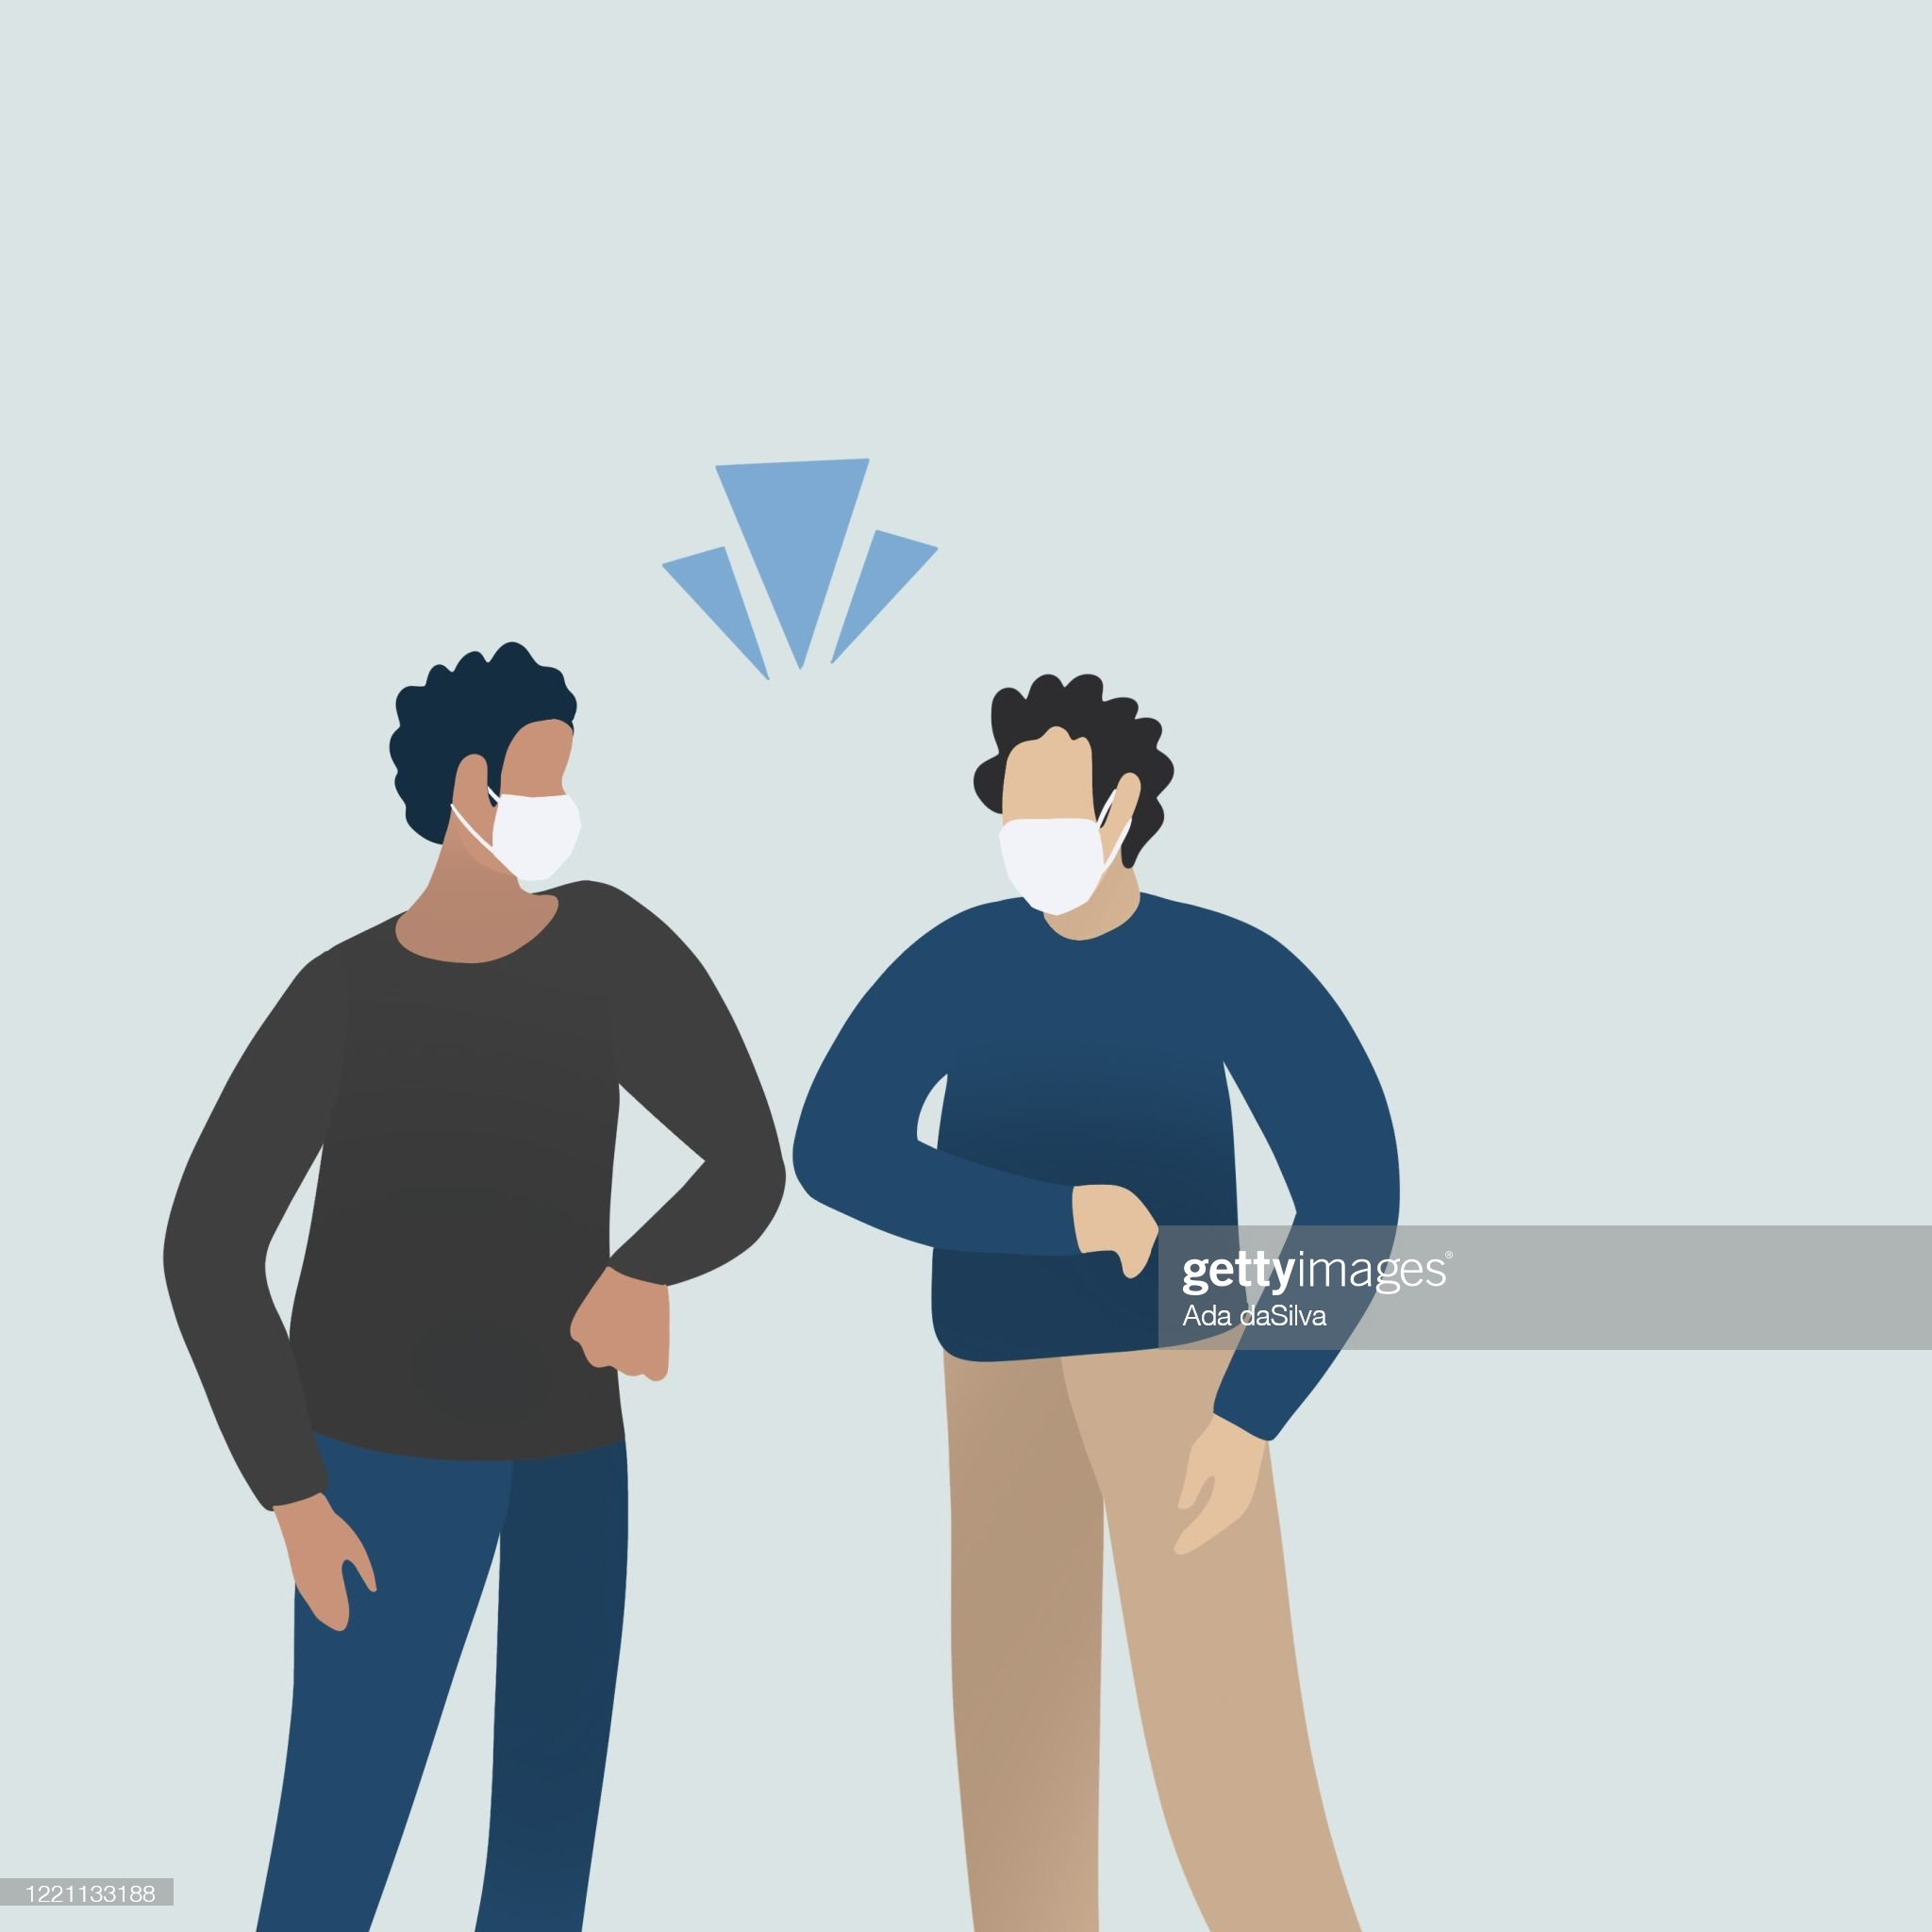 Social distancing people, Elbow bumping project from coronavirus : Stock Illustration